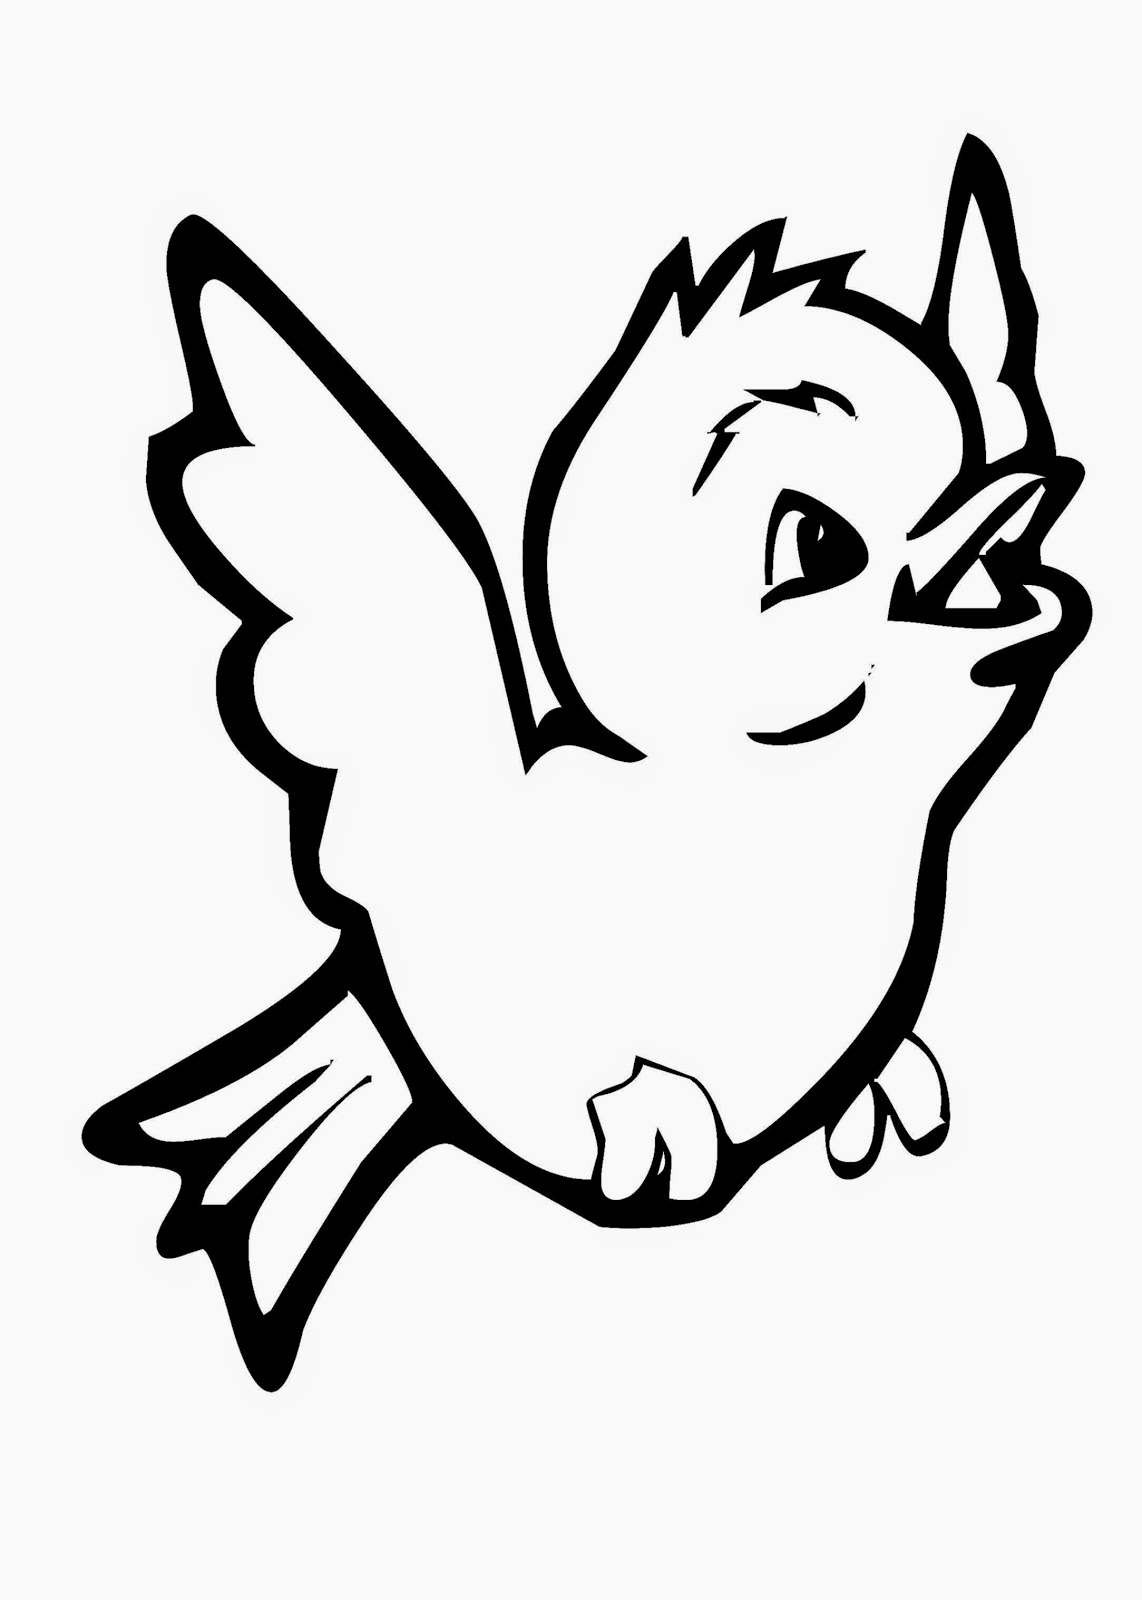 tiny Bird image coloring page